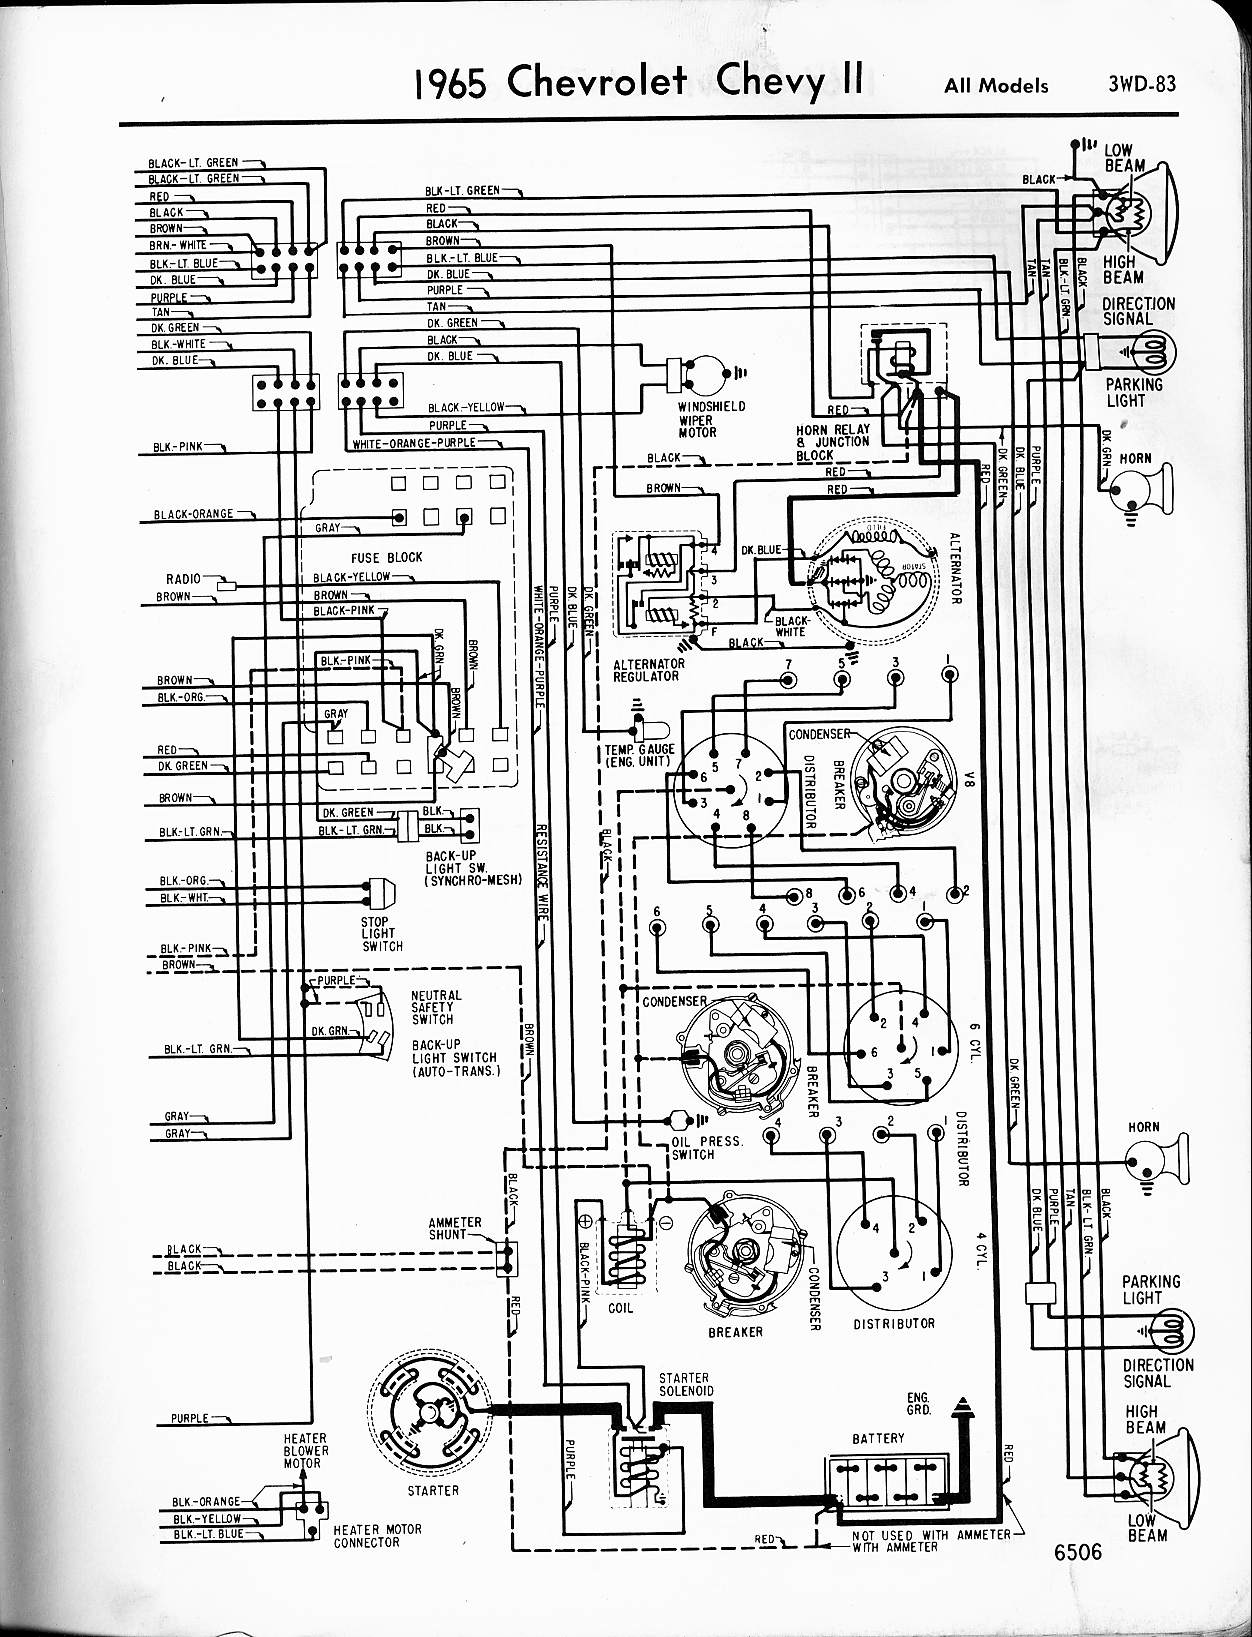 1975 chevrolet wiring diagram wiring diagram 75 impala 1975 chevrolet wiring diagram simple wiring diagramchevy wiring diagrams all wiring diagram chevy truck radio wiring